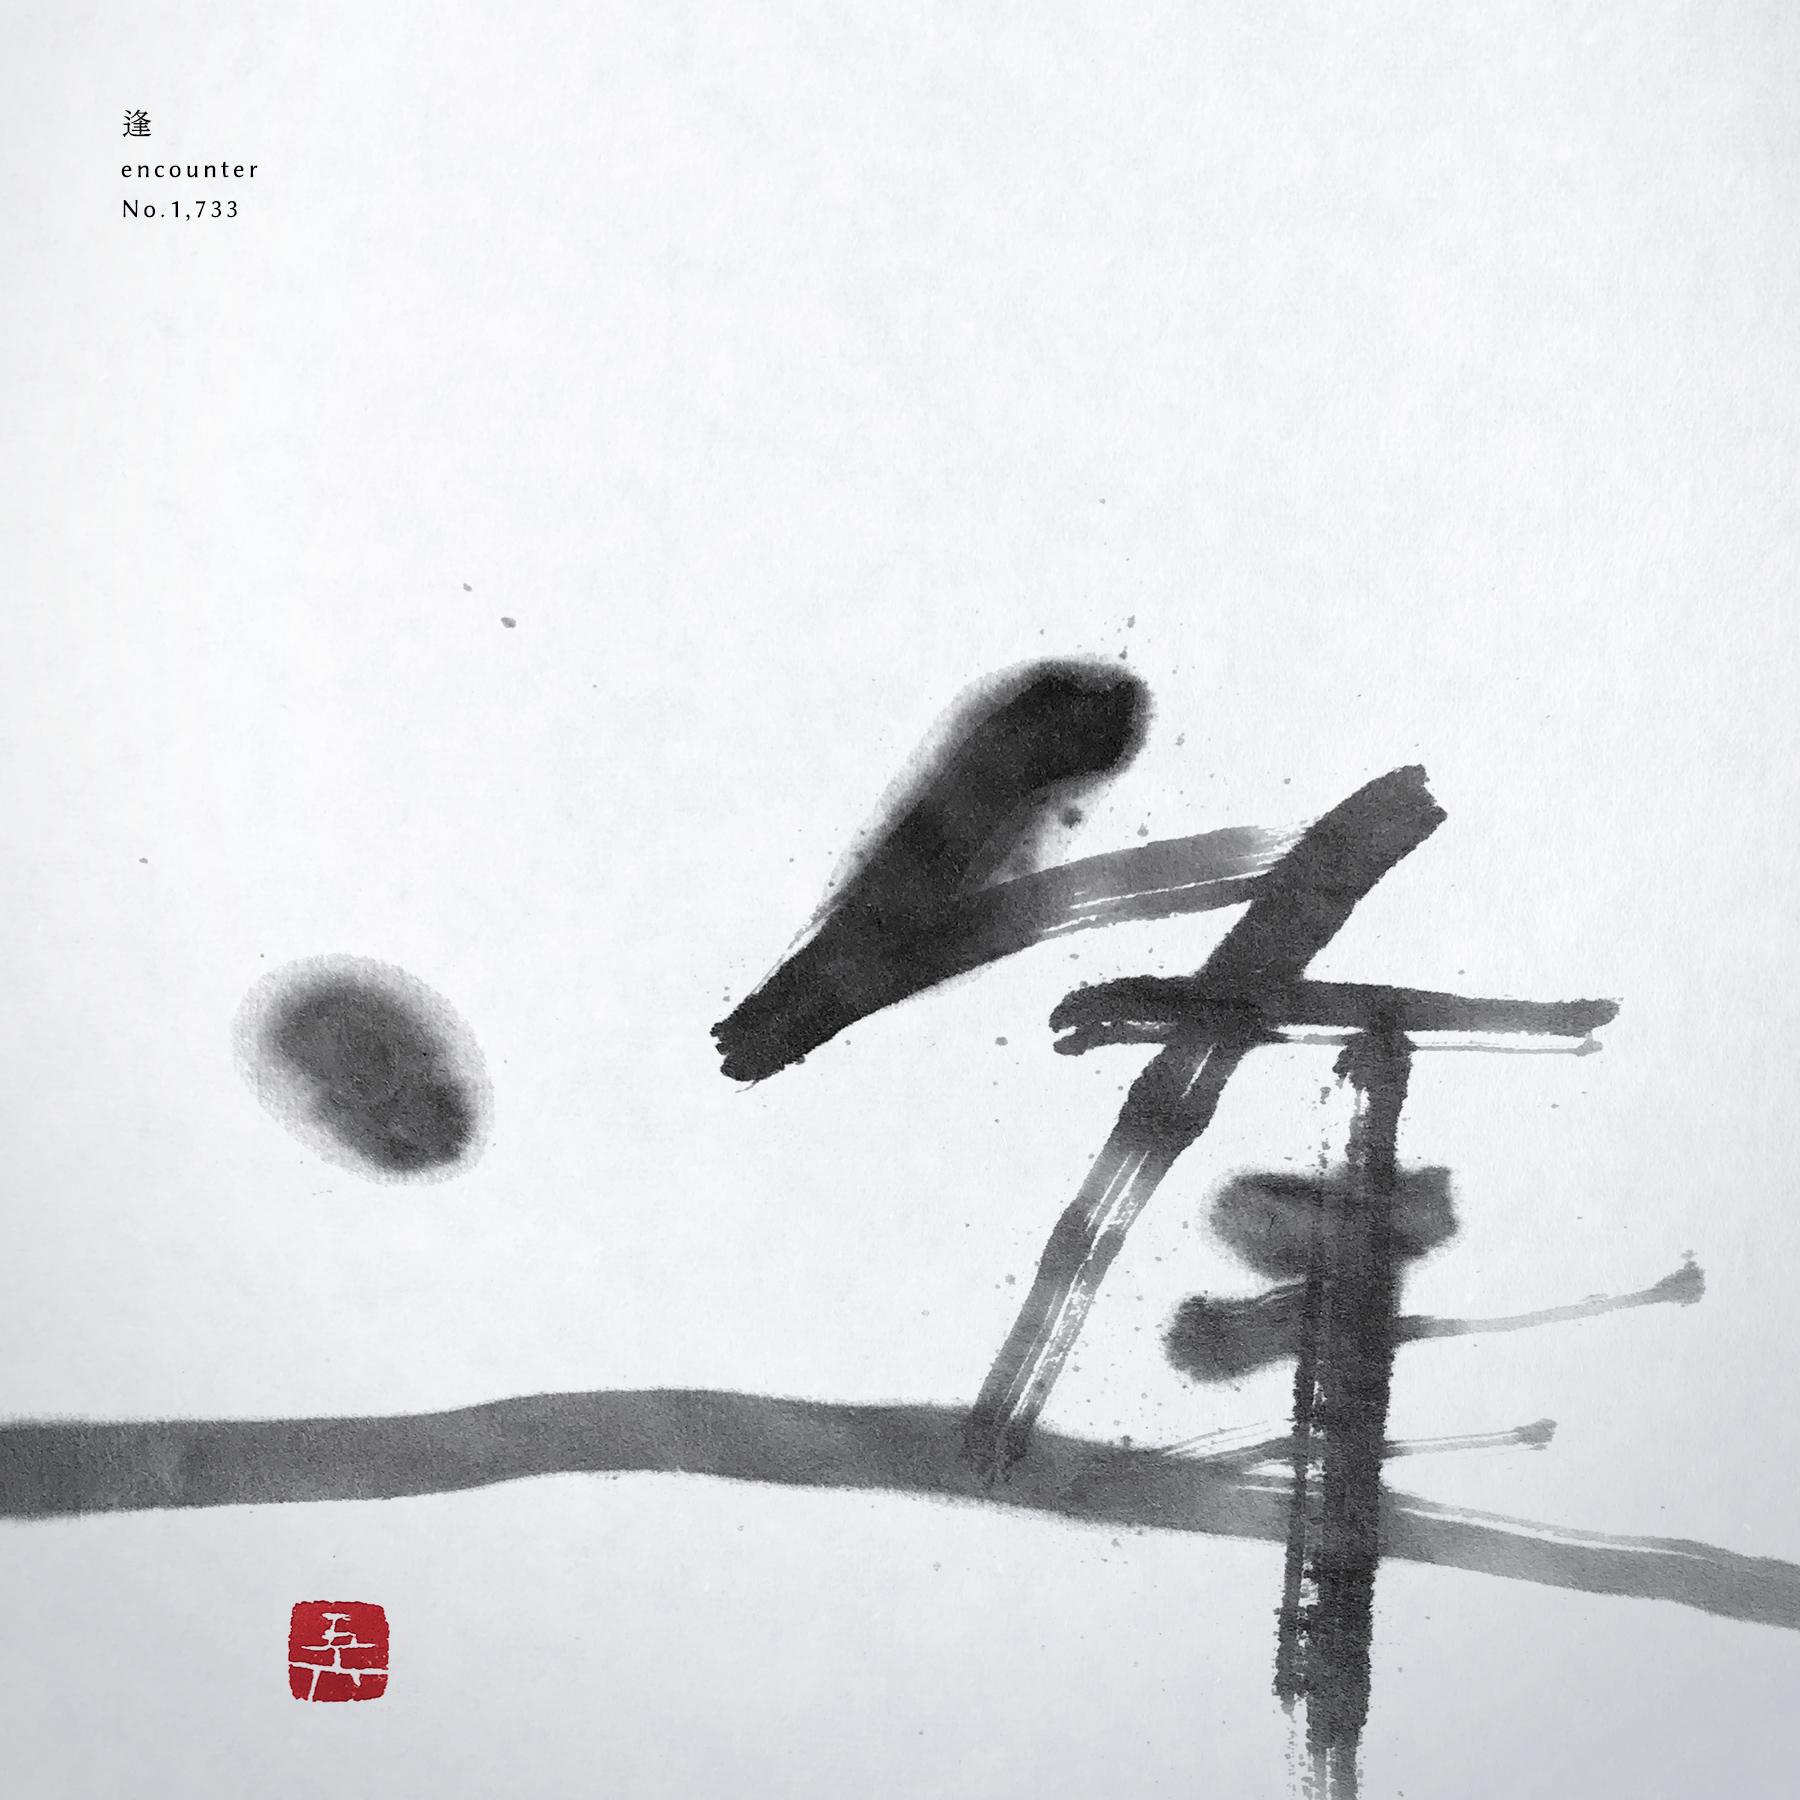 逢 | encounter 書道作品 japaneseart japanese calligraphy 書家 田川悟郎 Goroh Tagawa